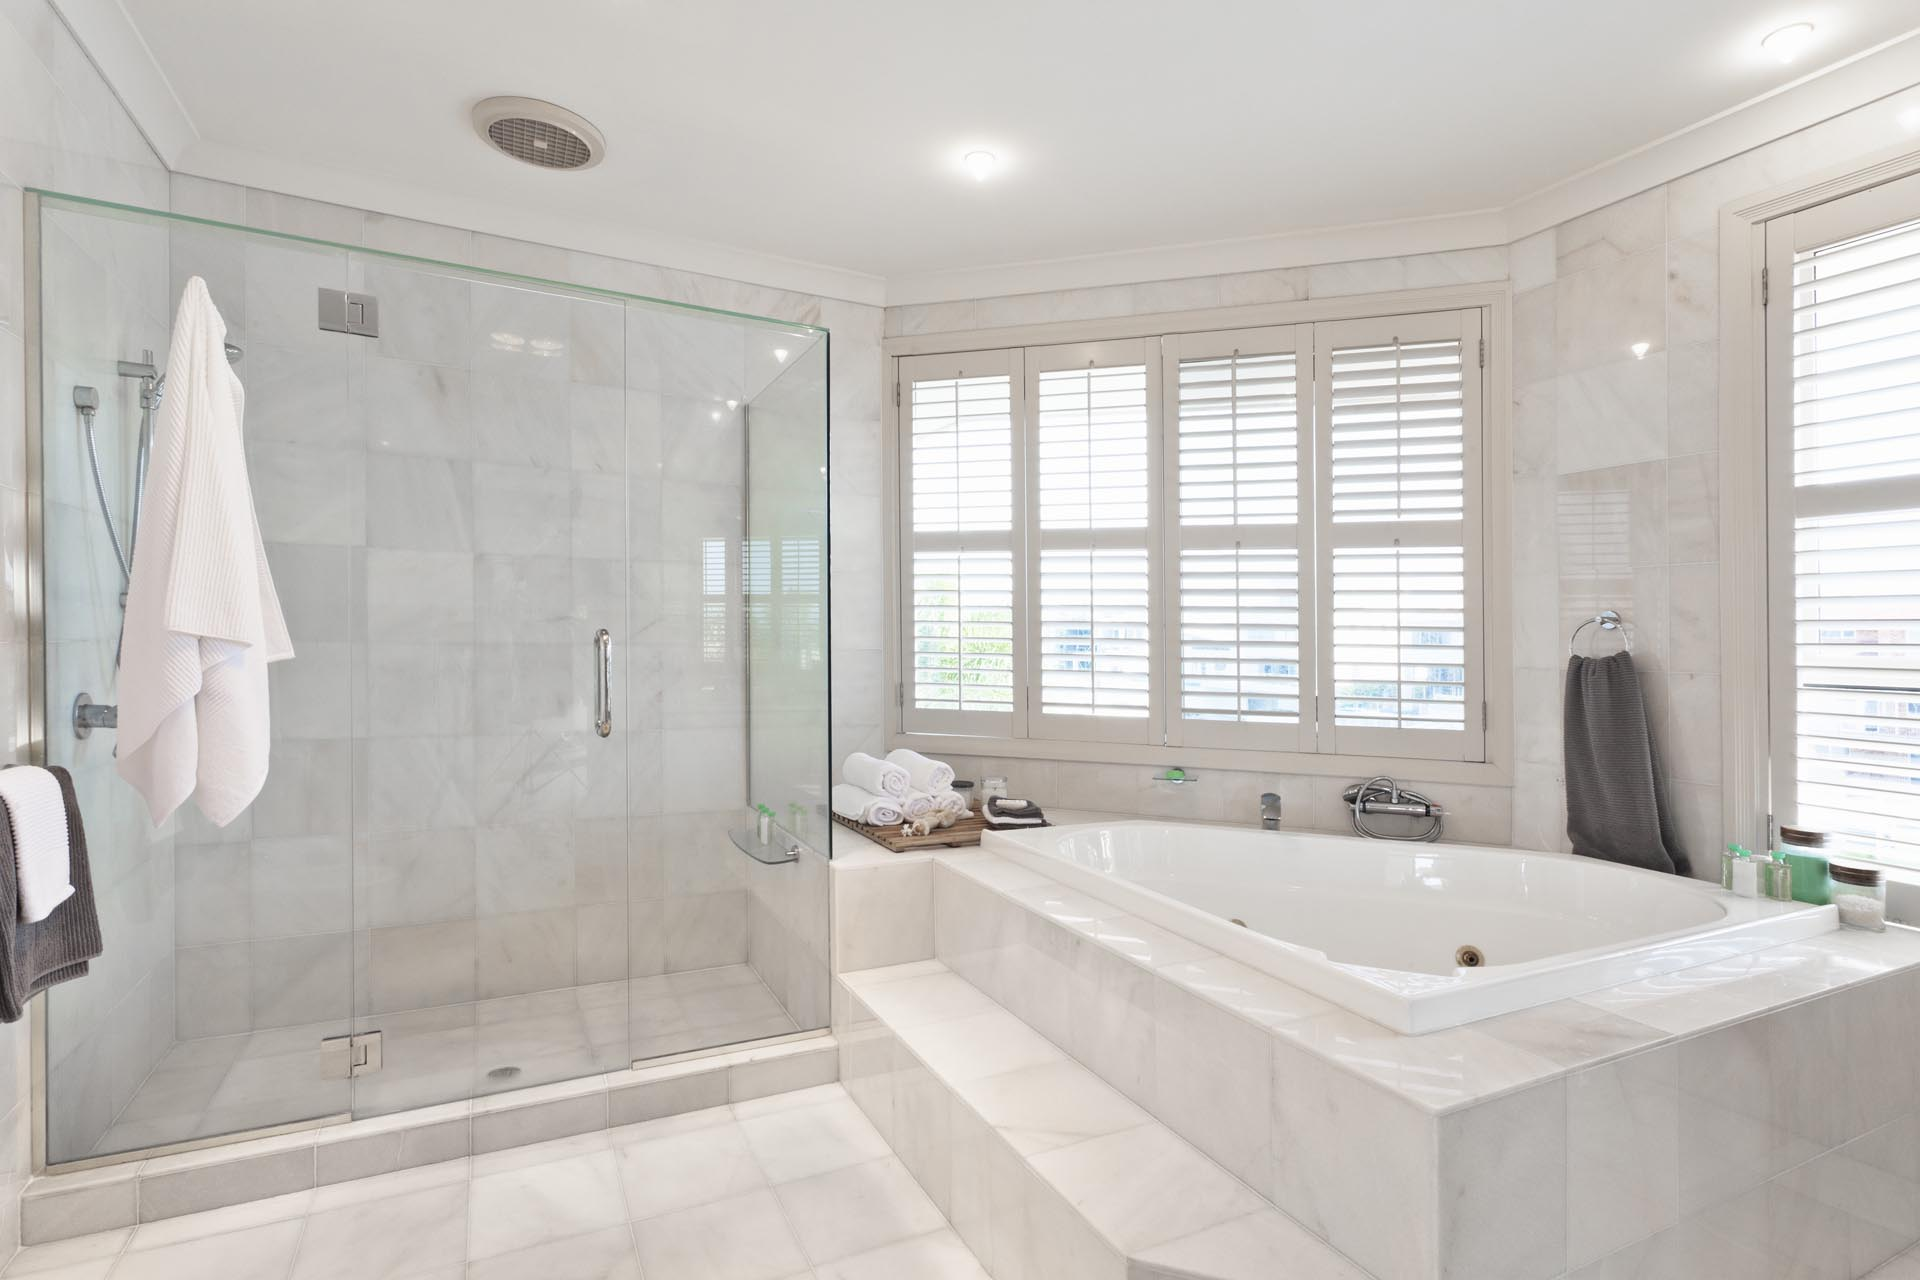 Bathroom Renovation Cost Dc consider these 3 things before bathroom remodeling